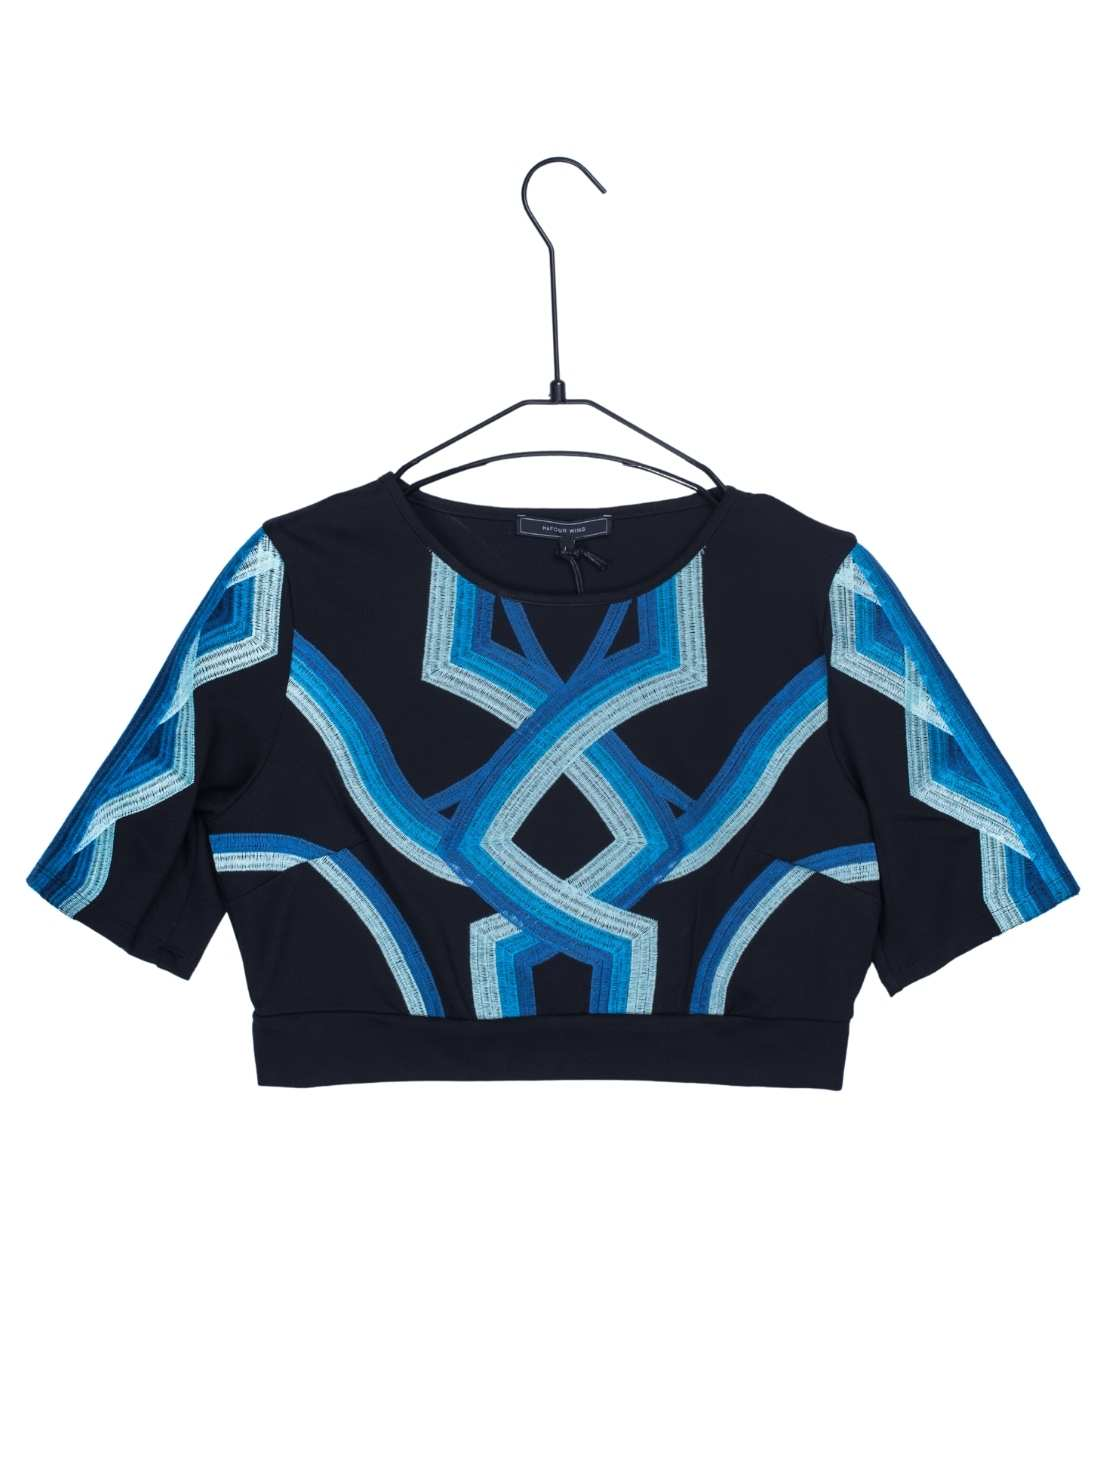 Ladies Ponti Roma Embroidery Short Sleeves Top